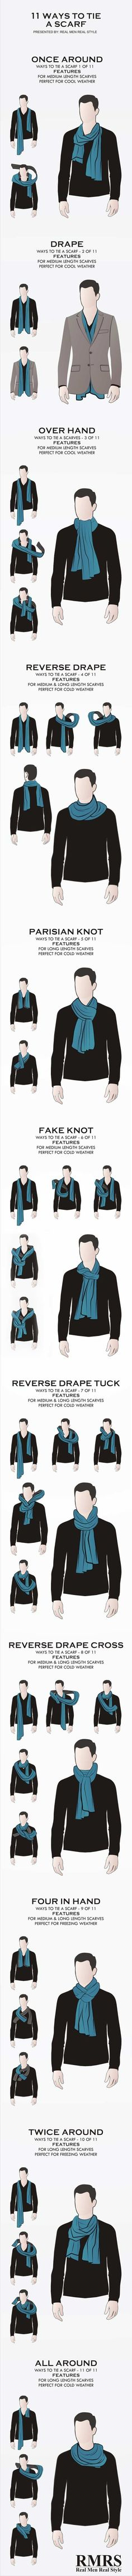 11 ways to tie mans scarf infographic. Psst.., woman can learn and apply this too ;) #tieswomen